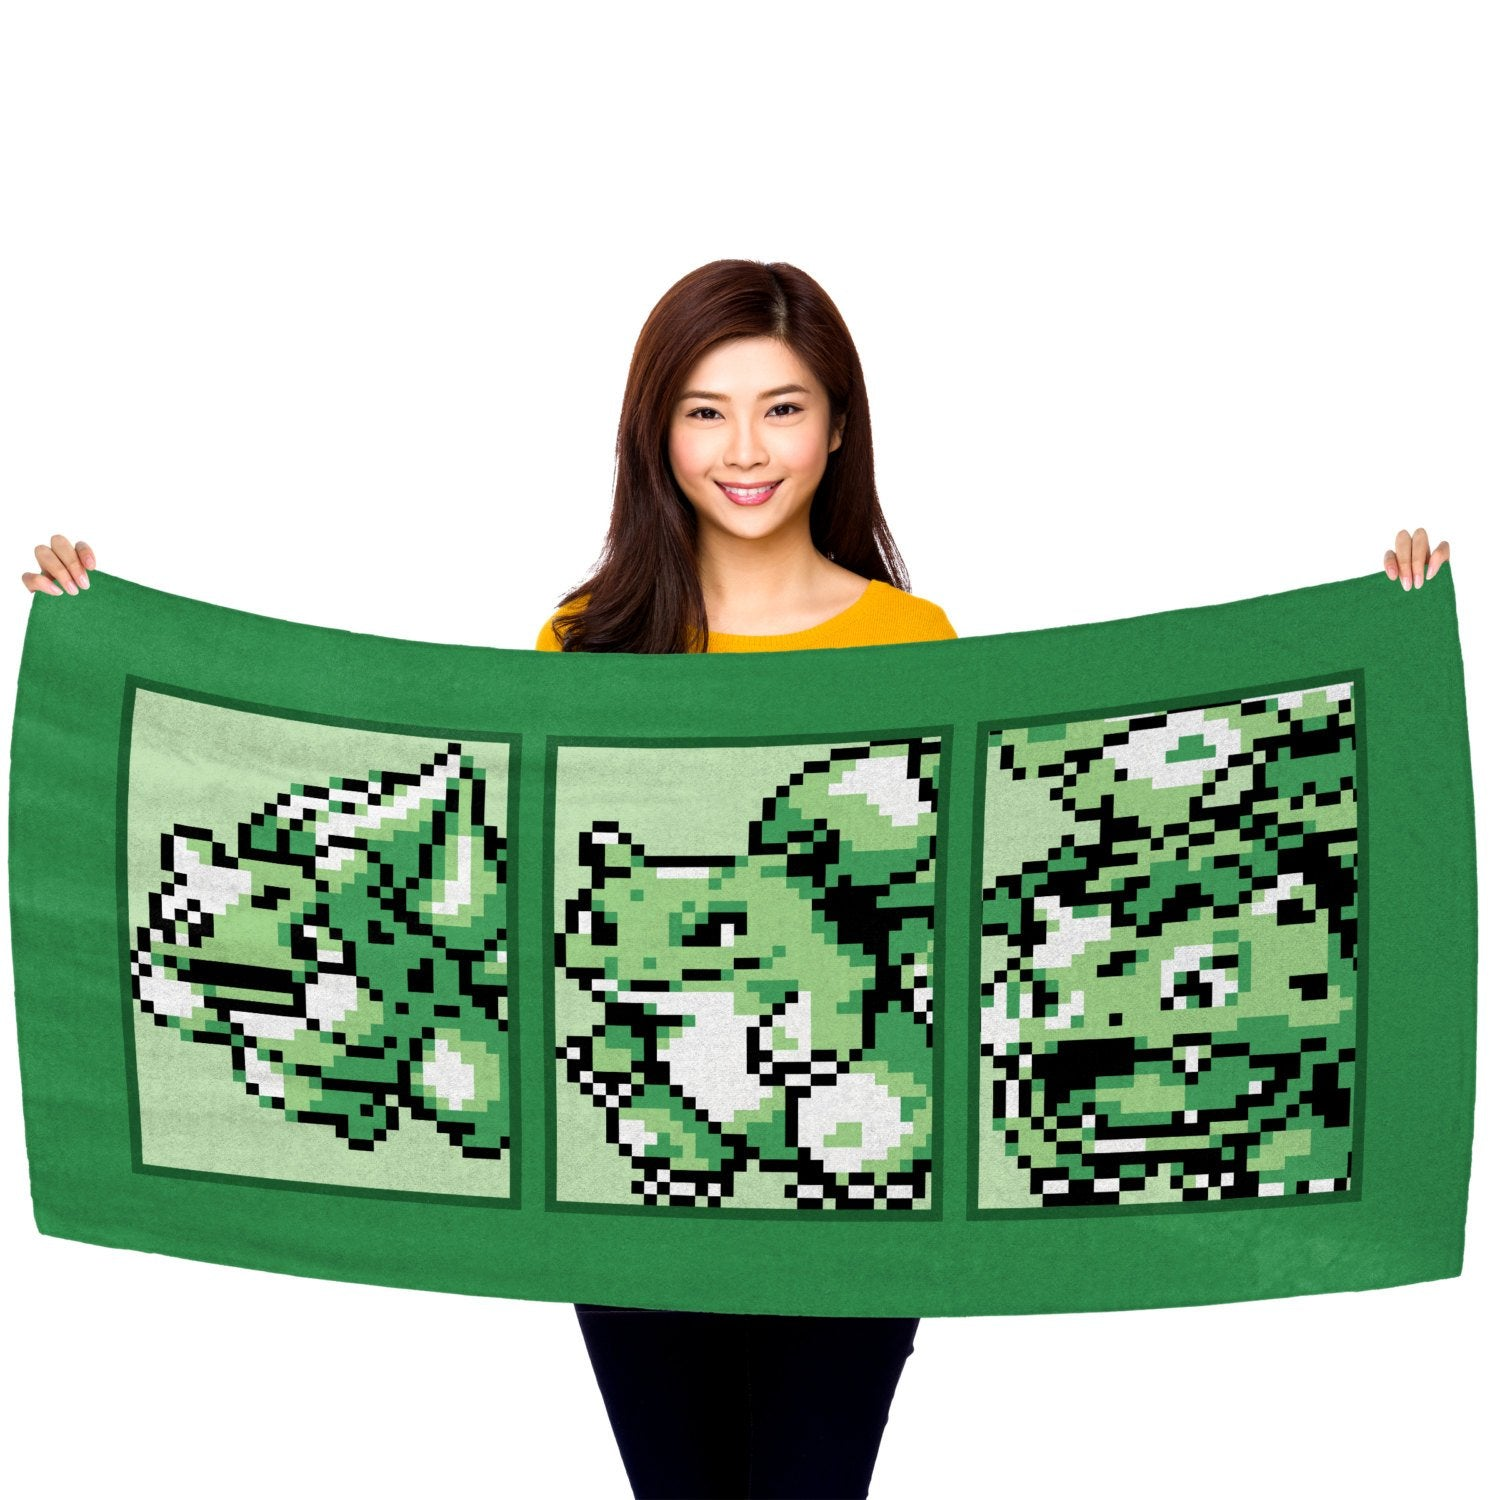 "Pokemon Grass Type Starter (Gen 1) Evolutionary Line 30"" x 60"" Microfiber Beach Towel"